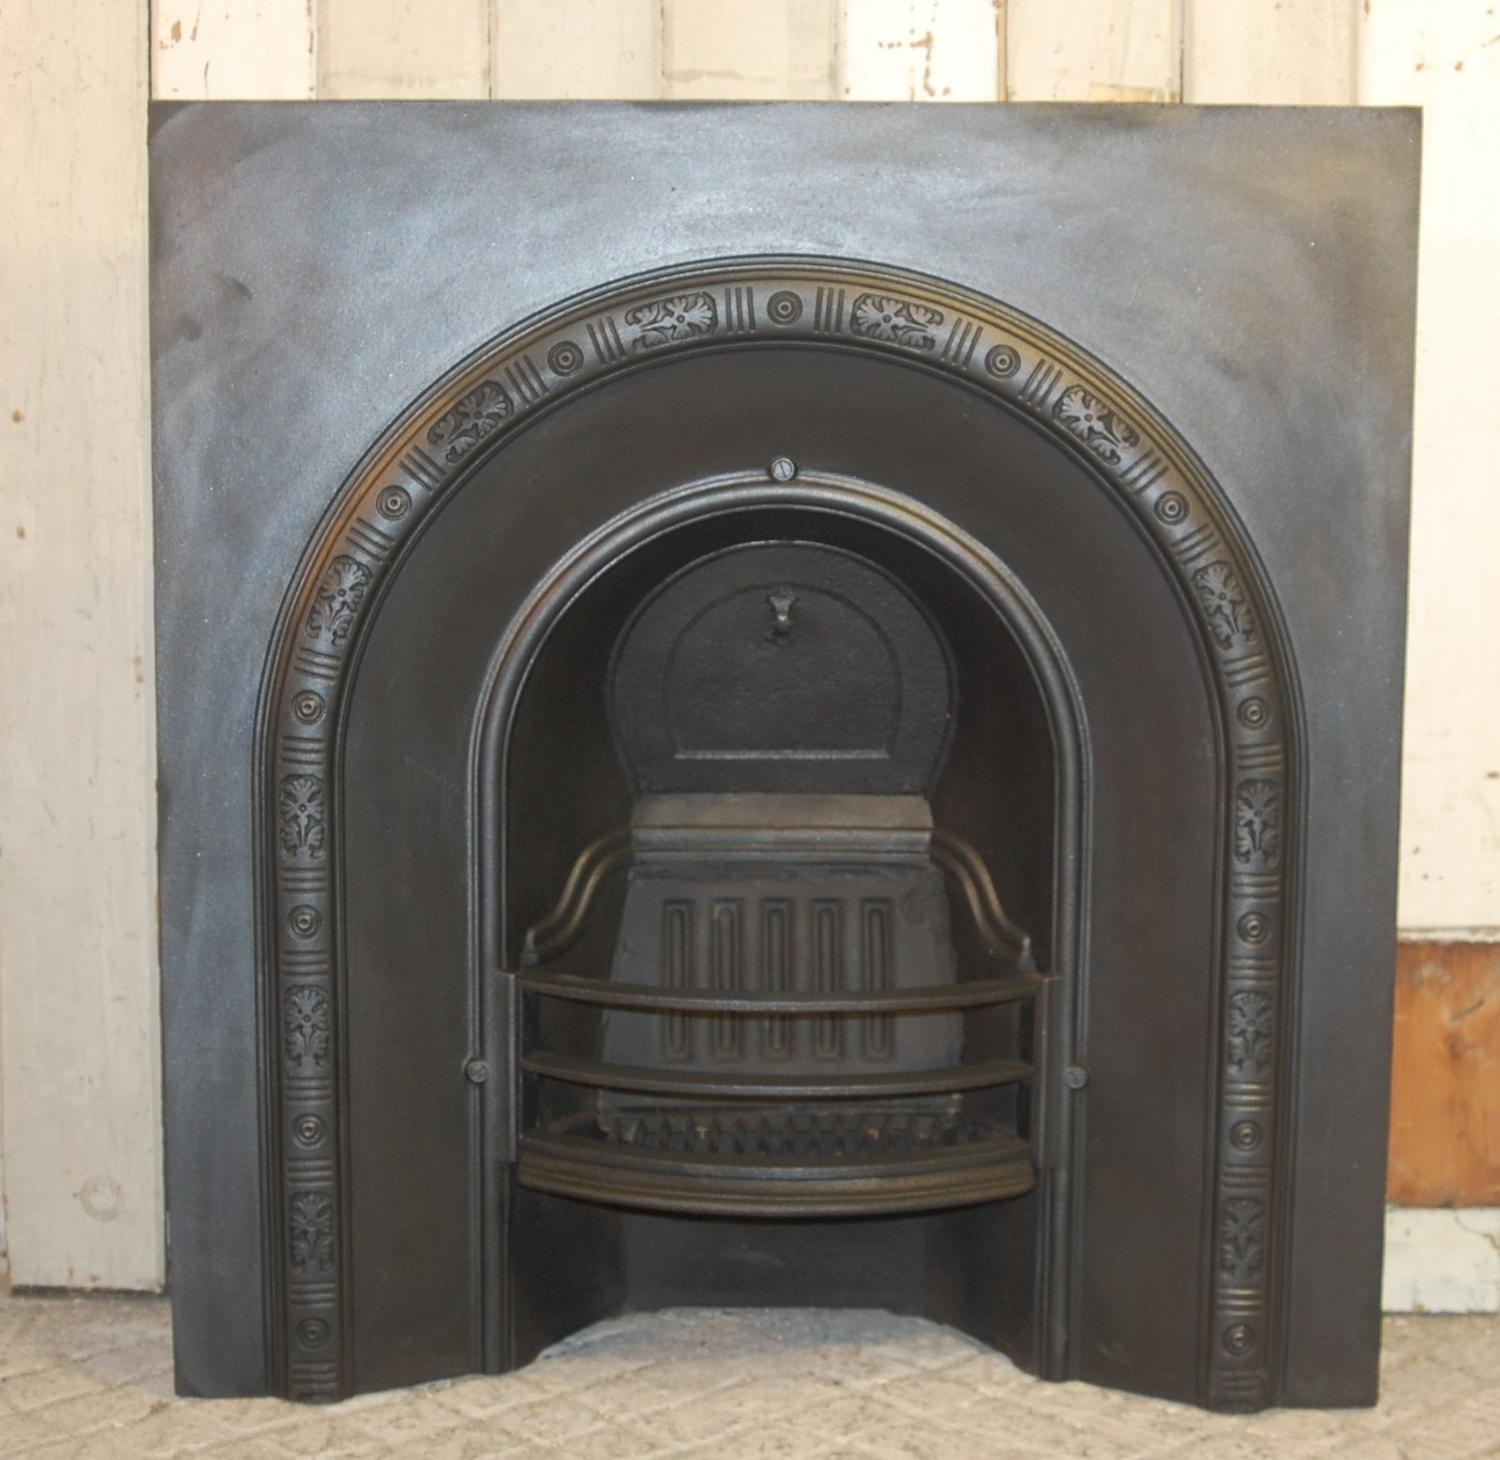 FI0013 A Late Victorian Cast Iron Fire Insert